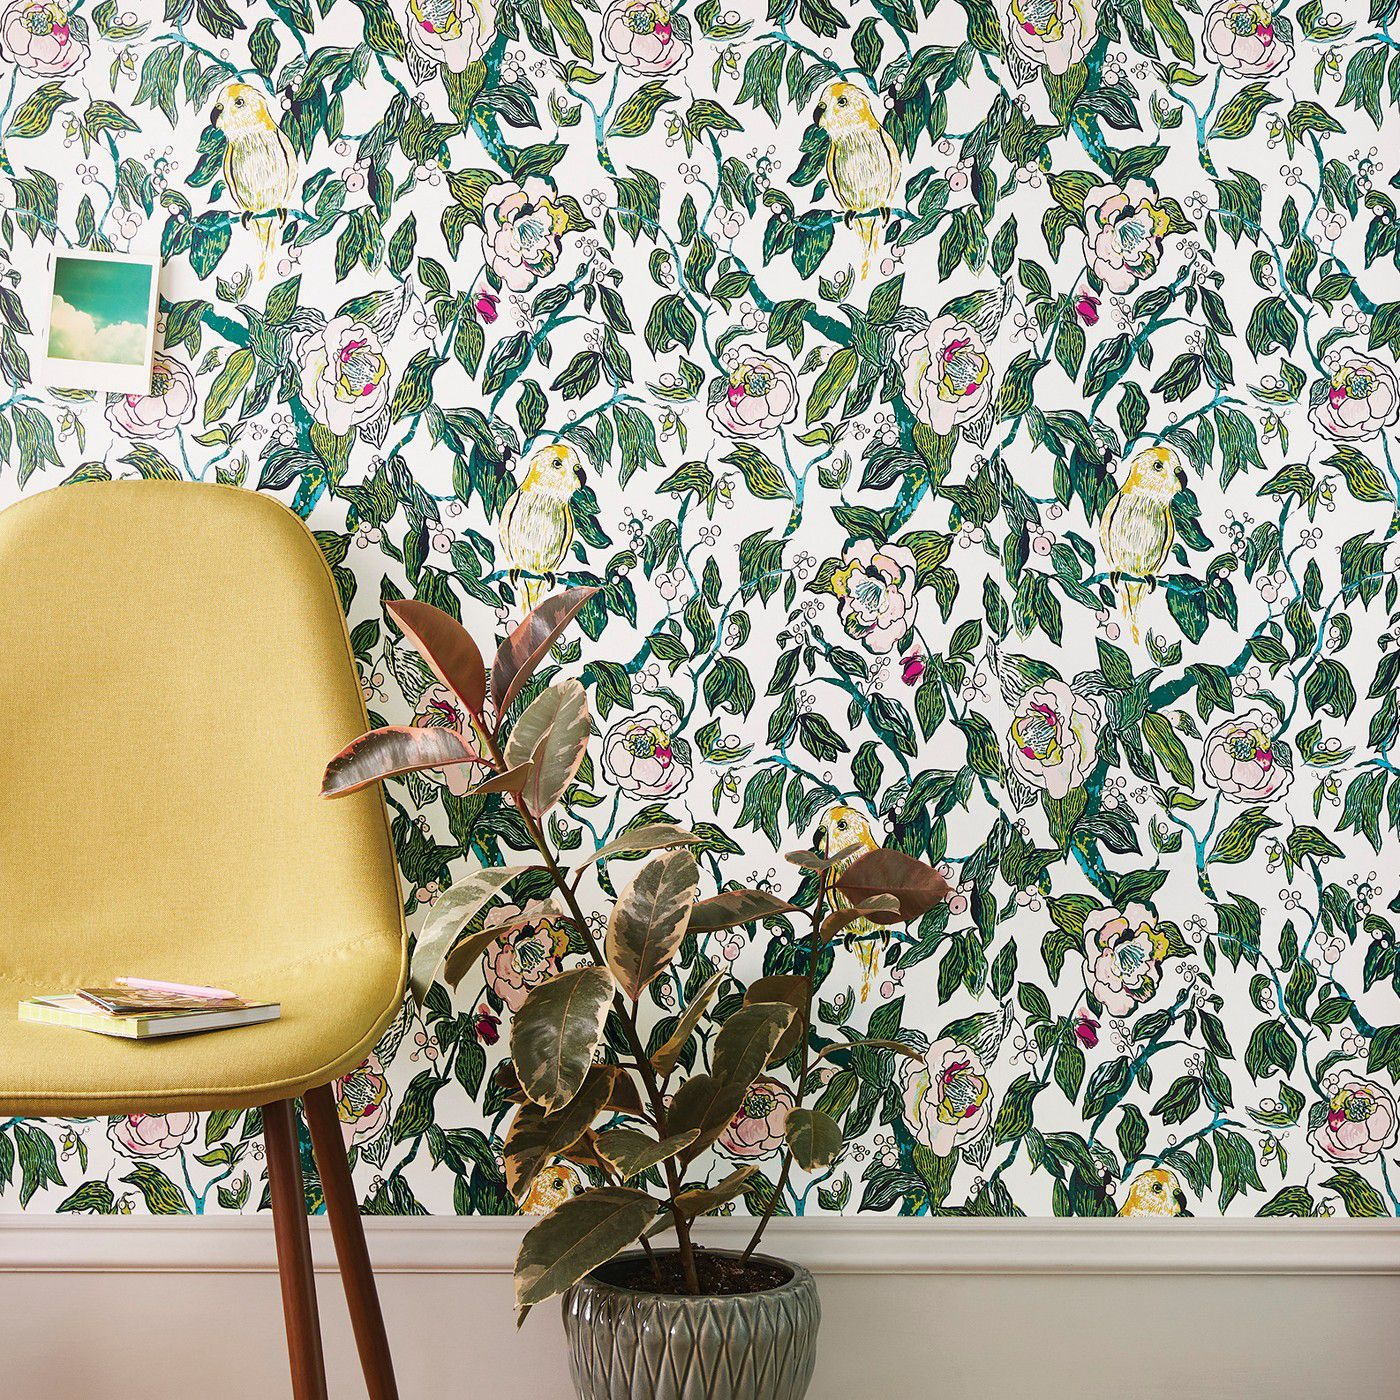 The 8 Best Removable Wallpaper Of 2019